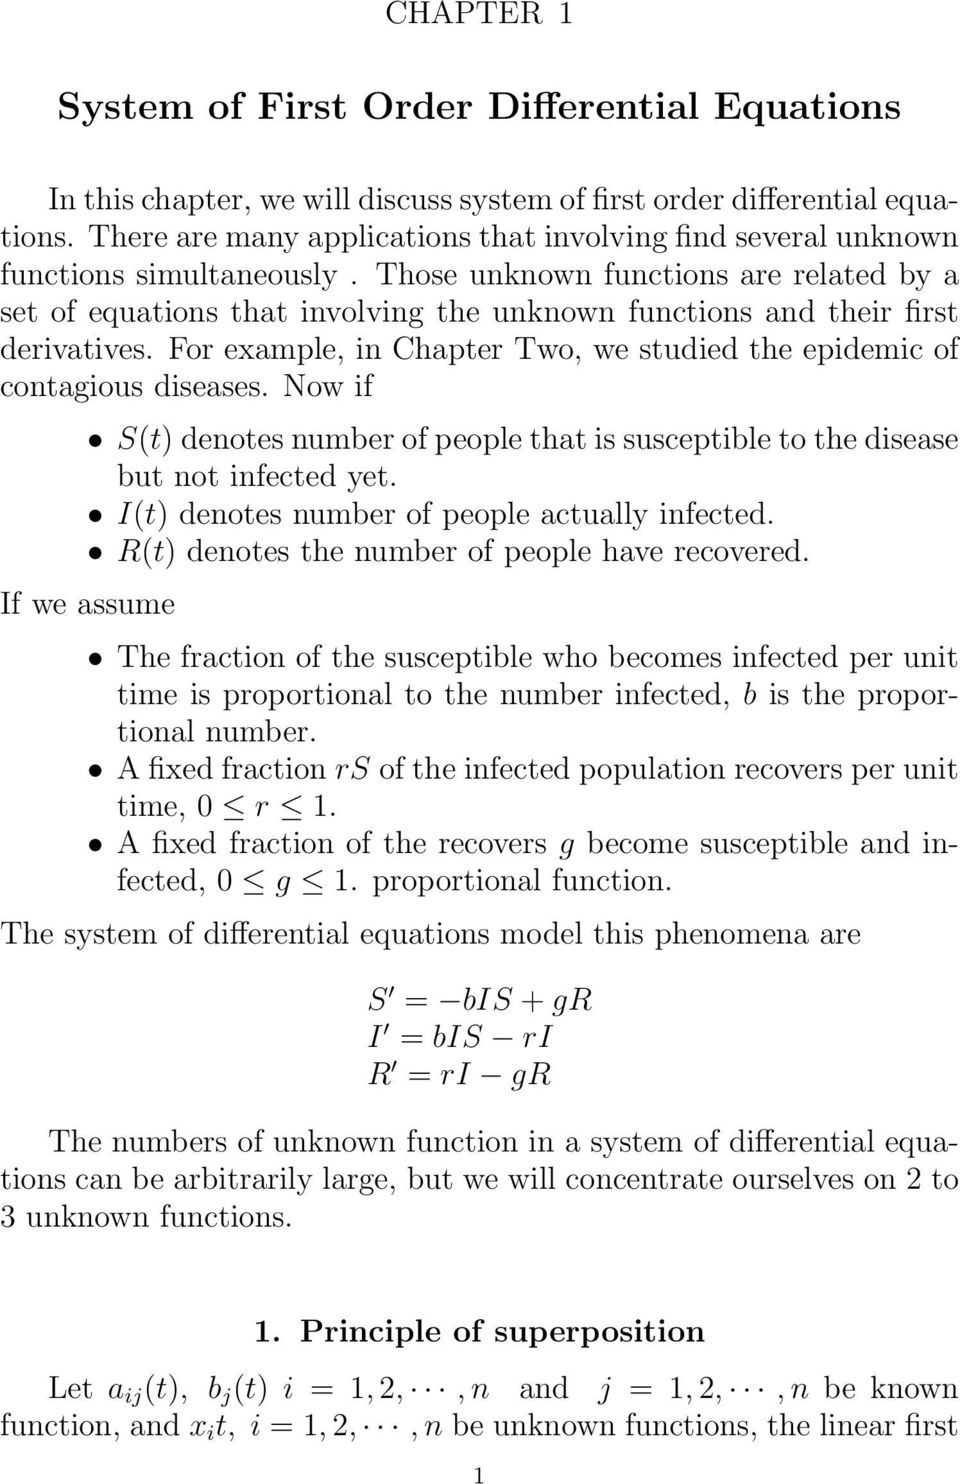 Those unknown functions are related by a set of equations that involving the unknown functions and their first derivatives. For example, in Chapter Two, we studied the epidemic of contagious diseases.